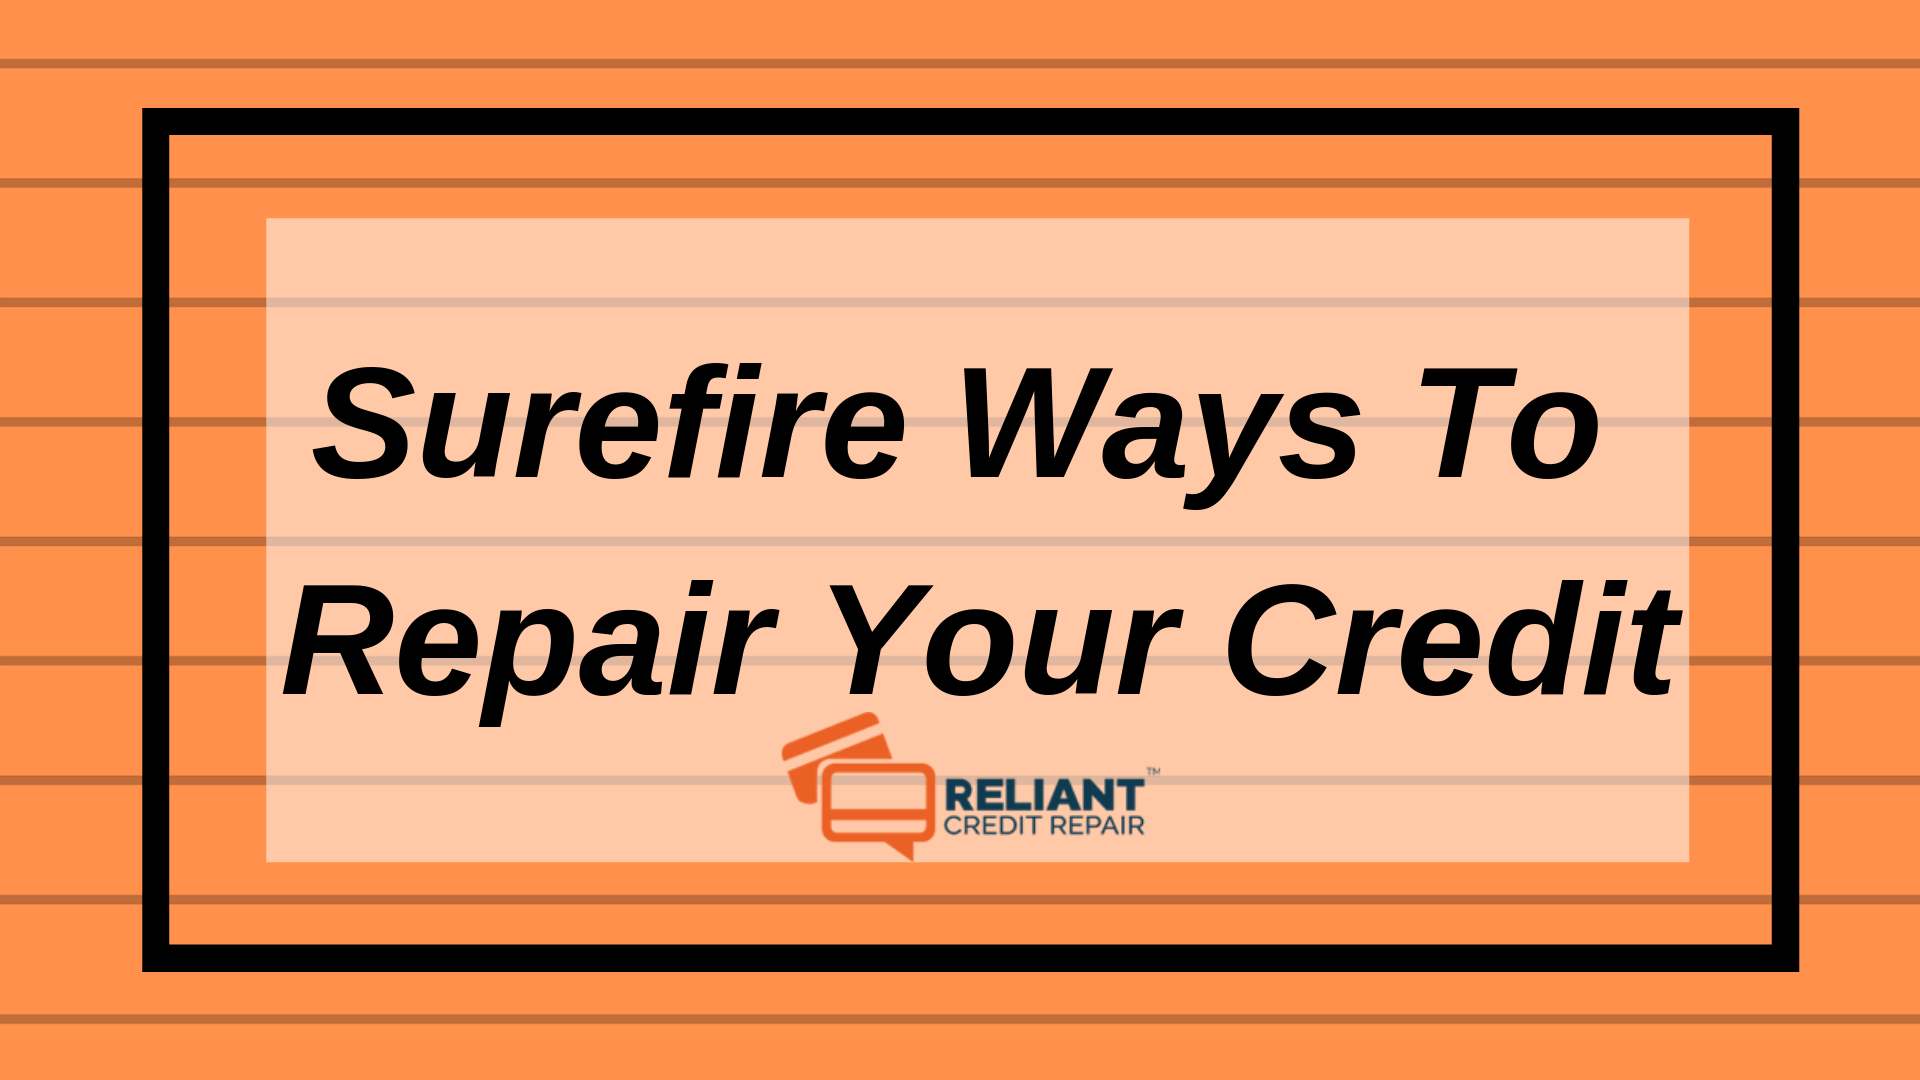 Surefire Ways To Repair Your Credit